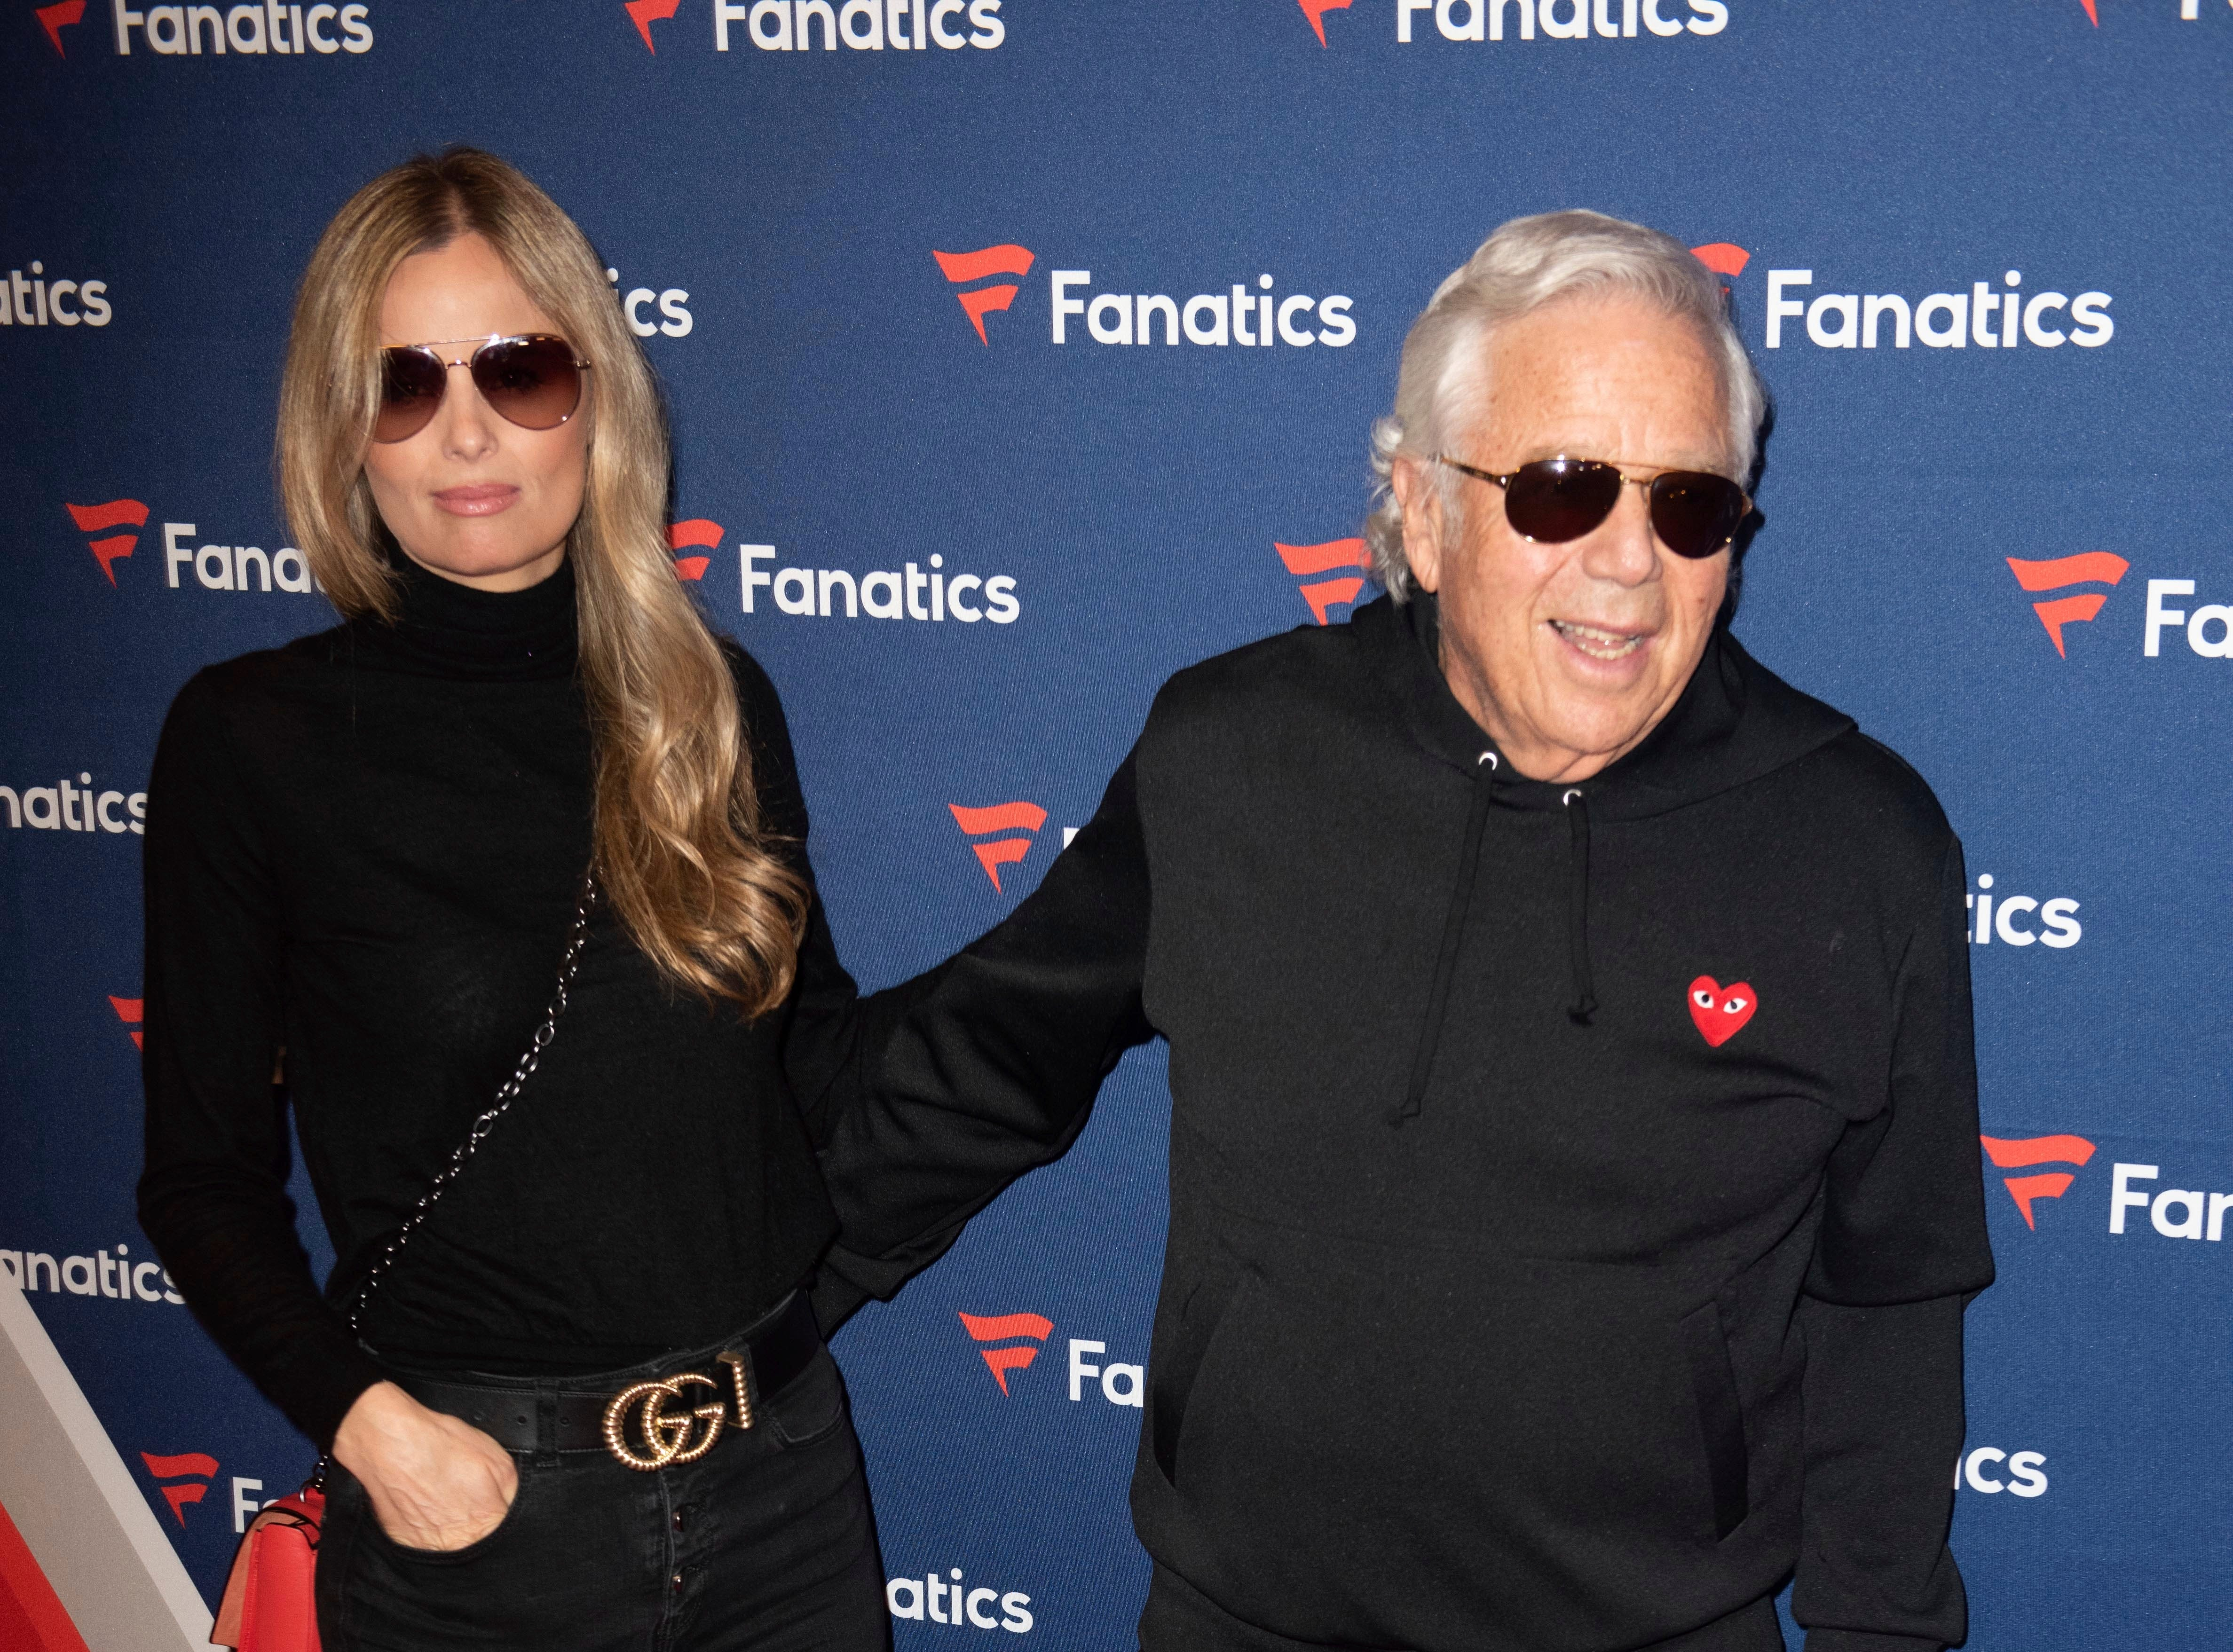 Ricki Noel Lander, left, and Robert Kraft, right, arrive at the 2019 Fanatics Super Bowl Party on Saturday, Feb. 2, 2019, in Atlanta.